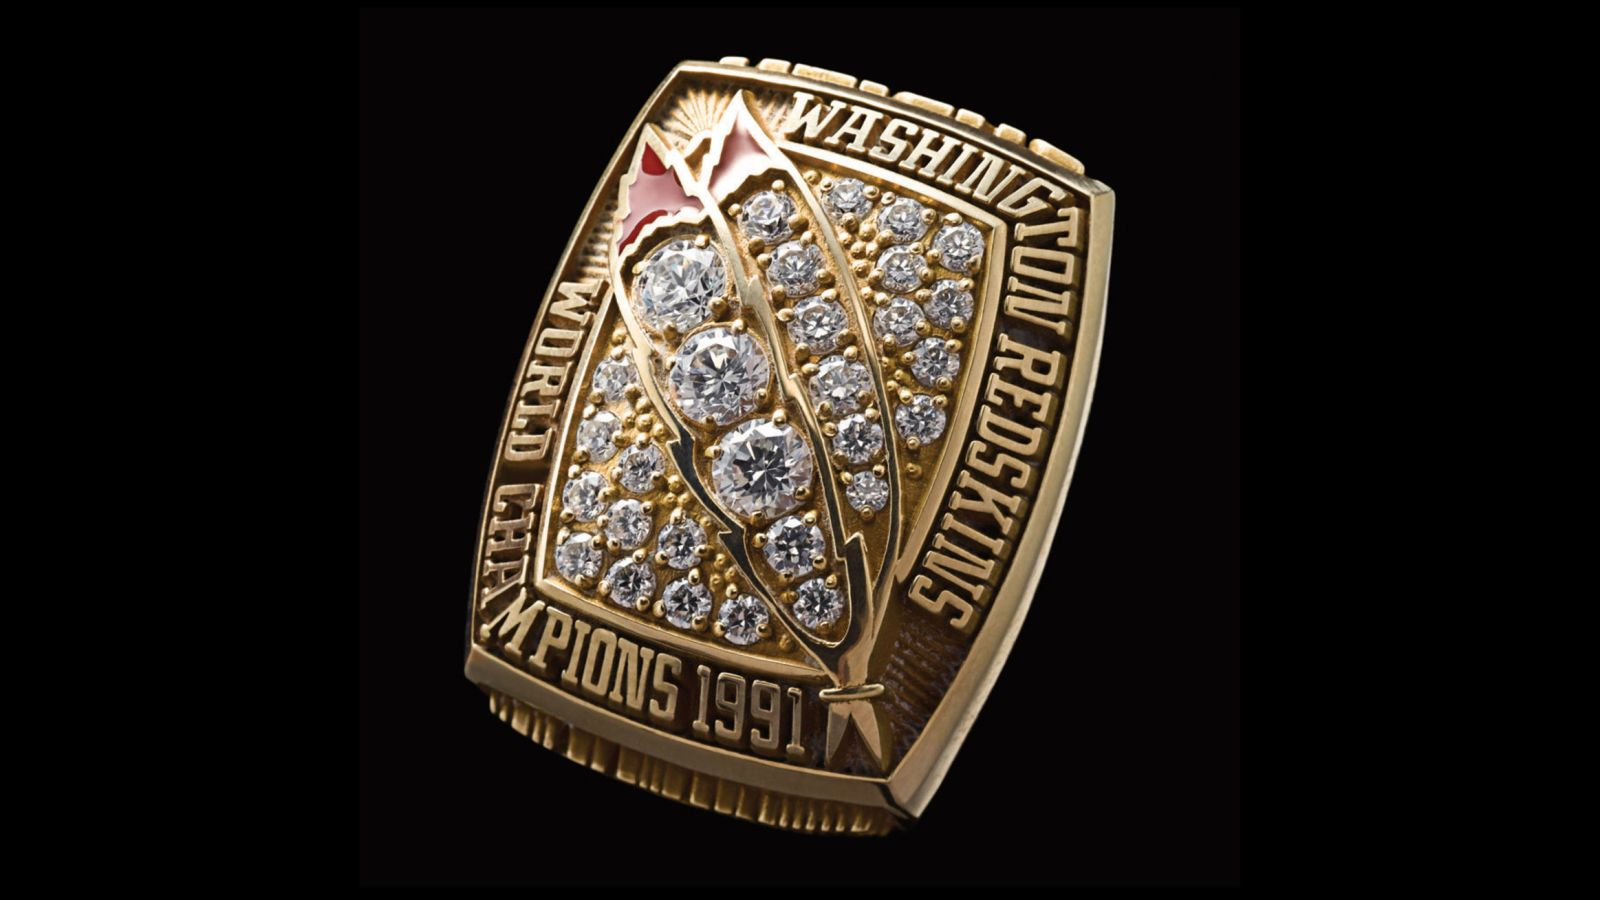 1991 Washington Redskins Super Bowl Championship Ring